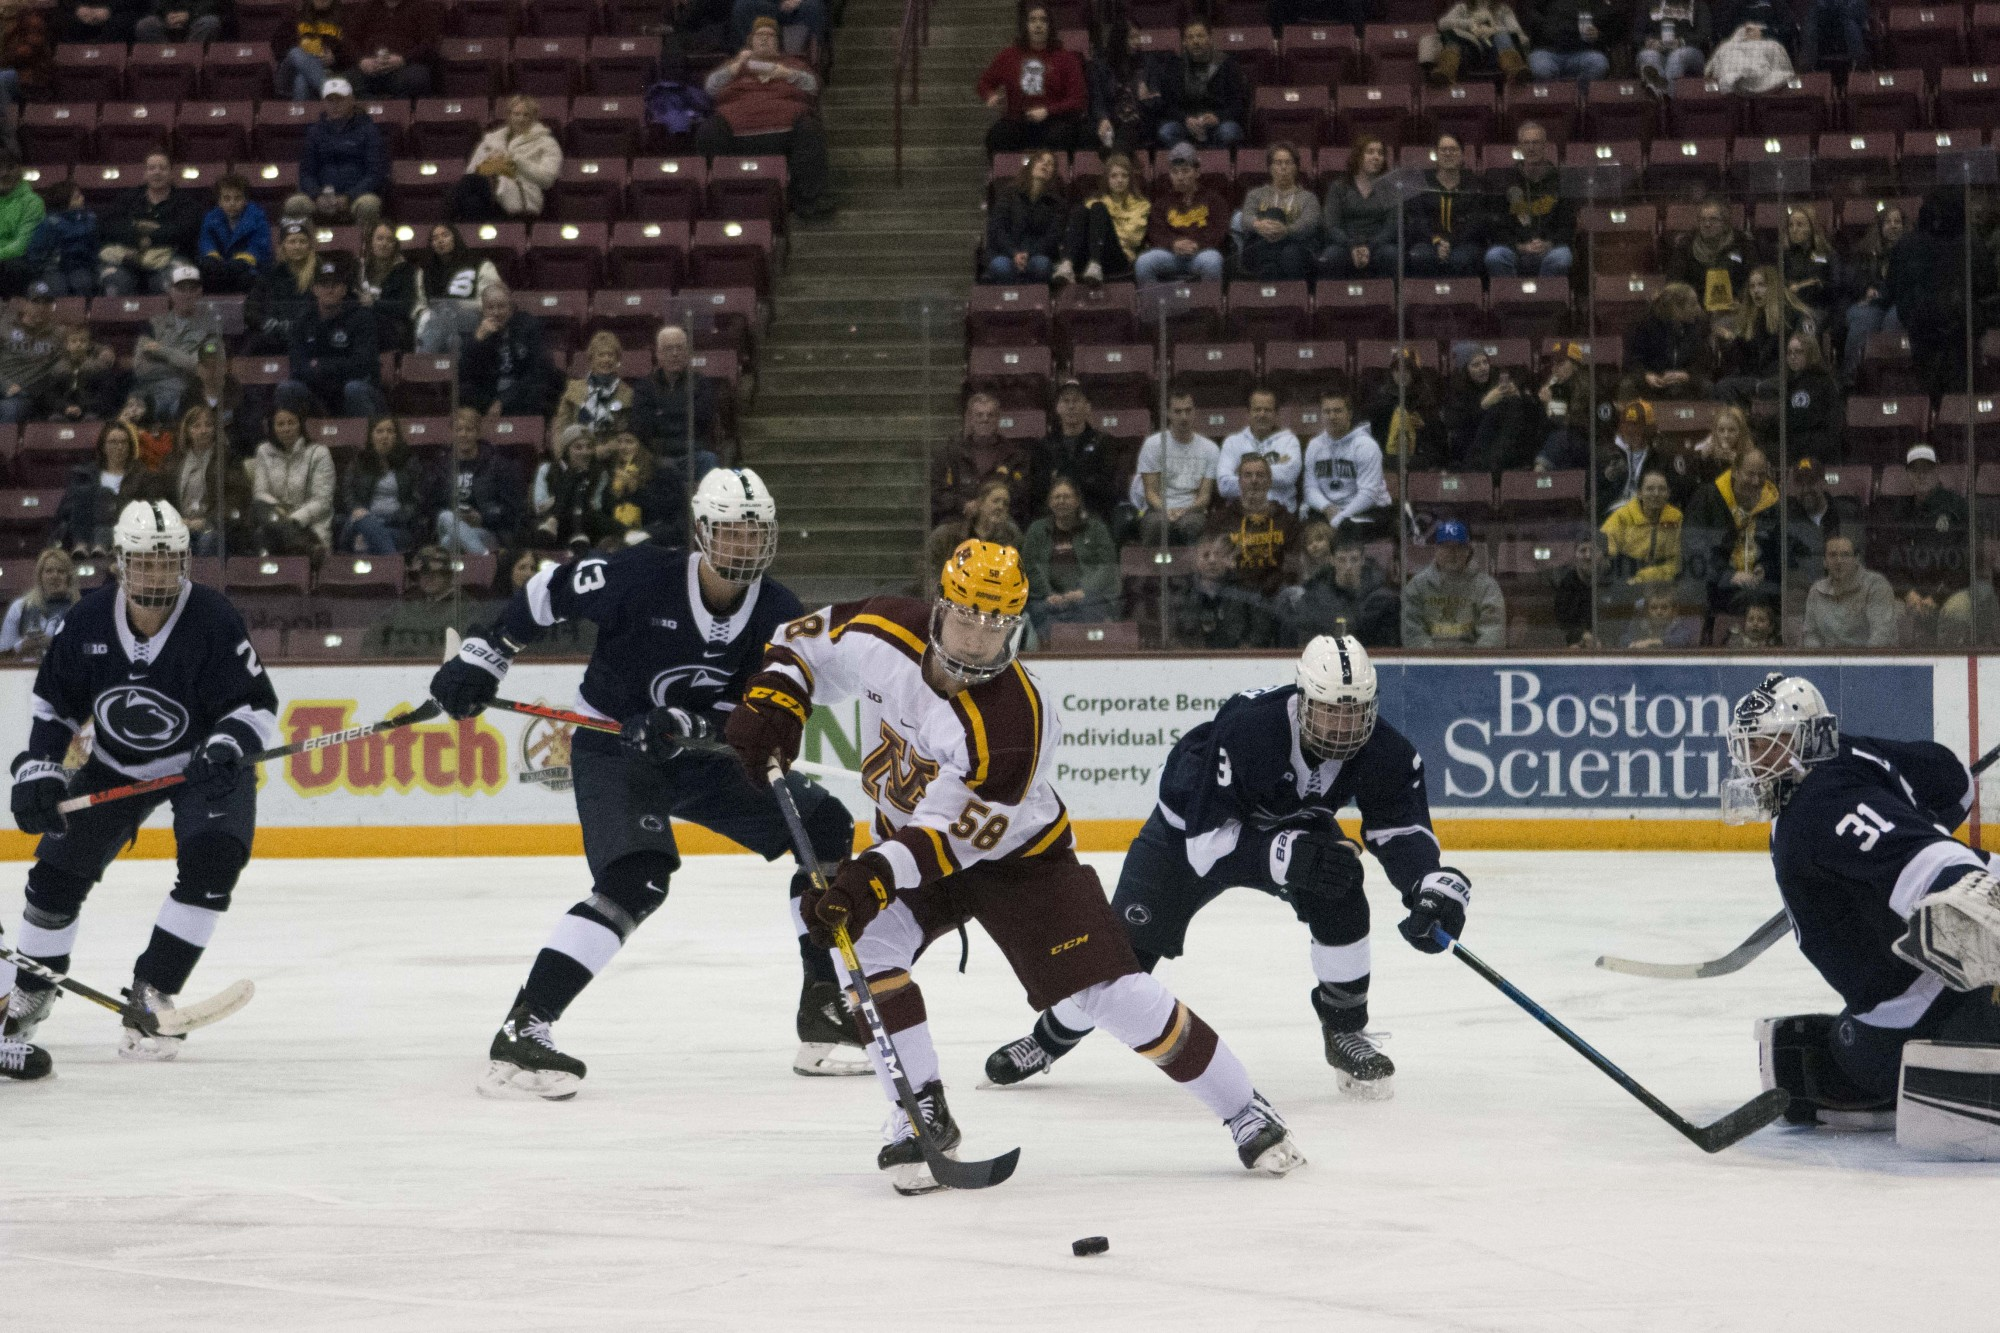 Forward Sampo Ranta handles the puck during the game against the Penn State at 3M Arena at Mariucci on Friday, Nov. 15.